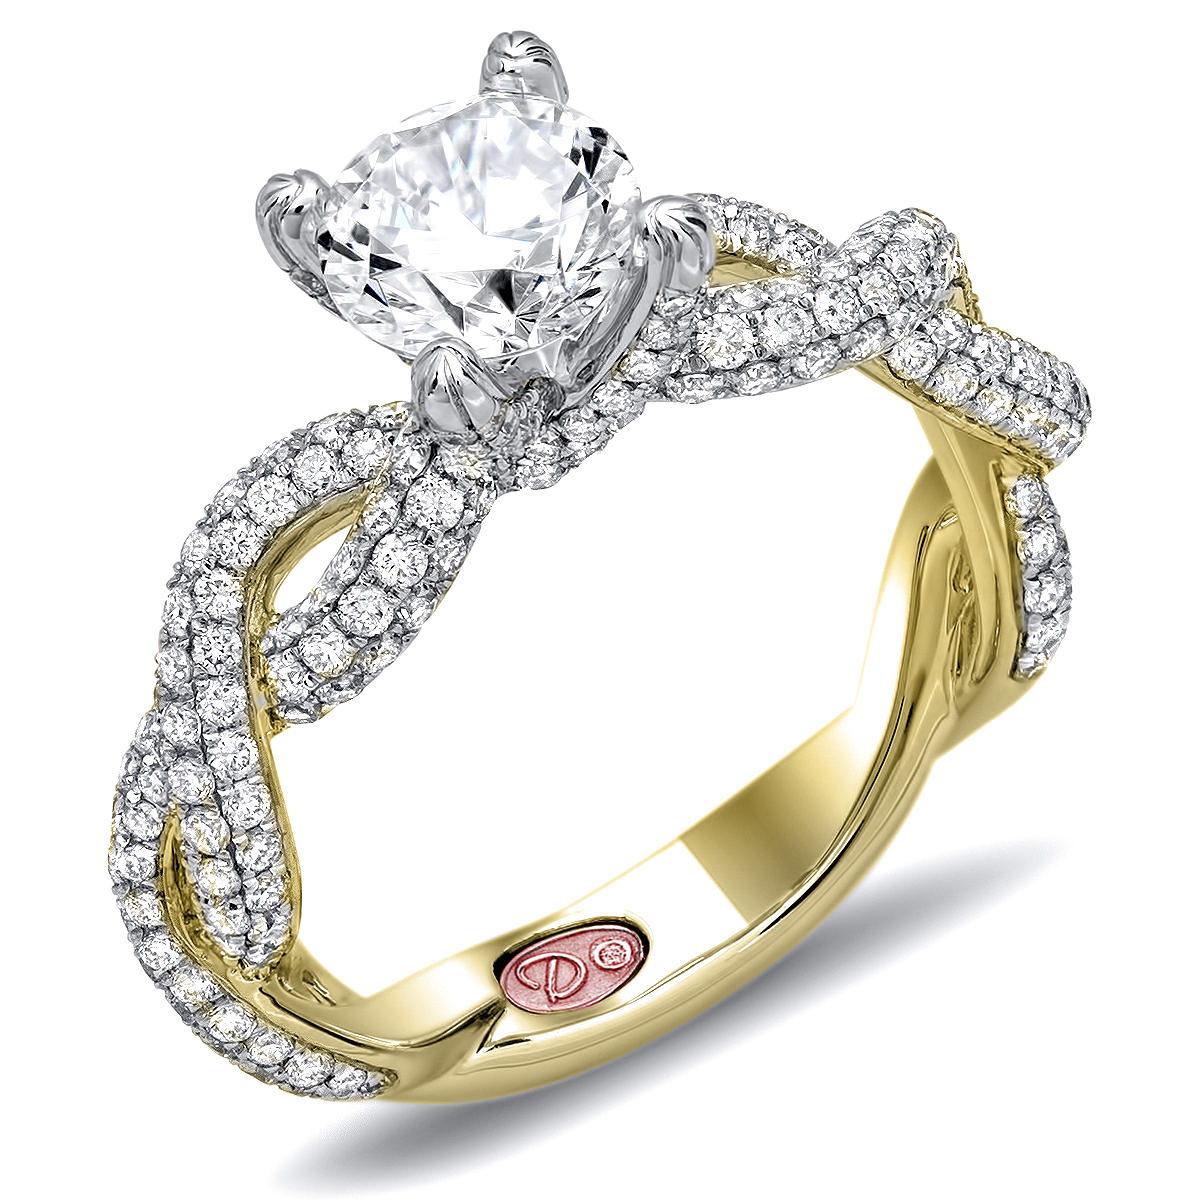 Designer Engagement Rings - DW5904